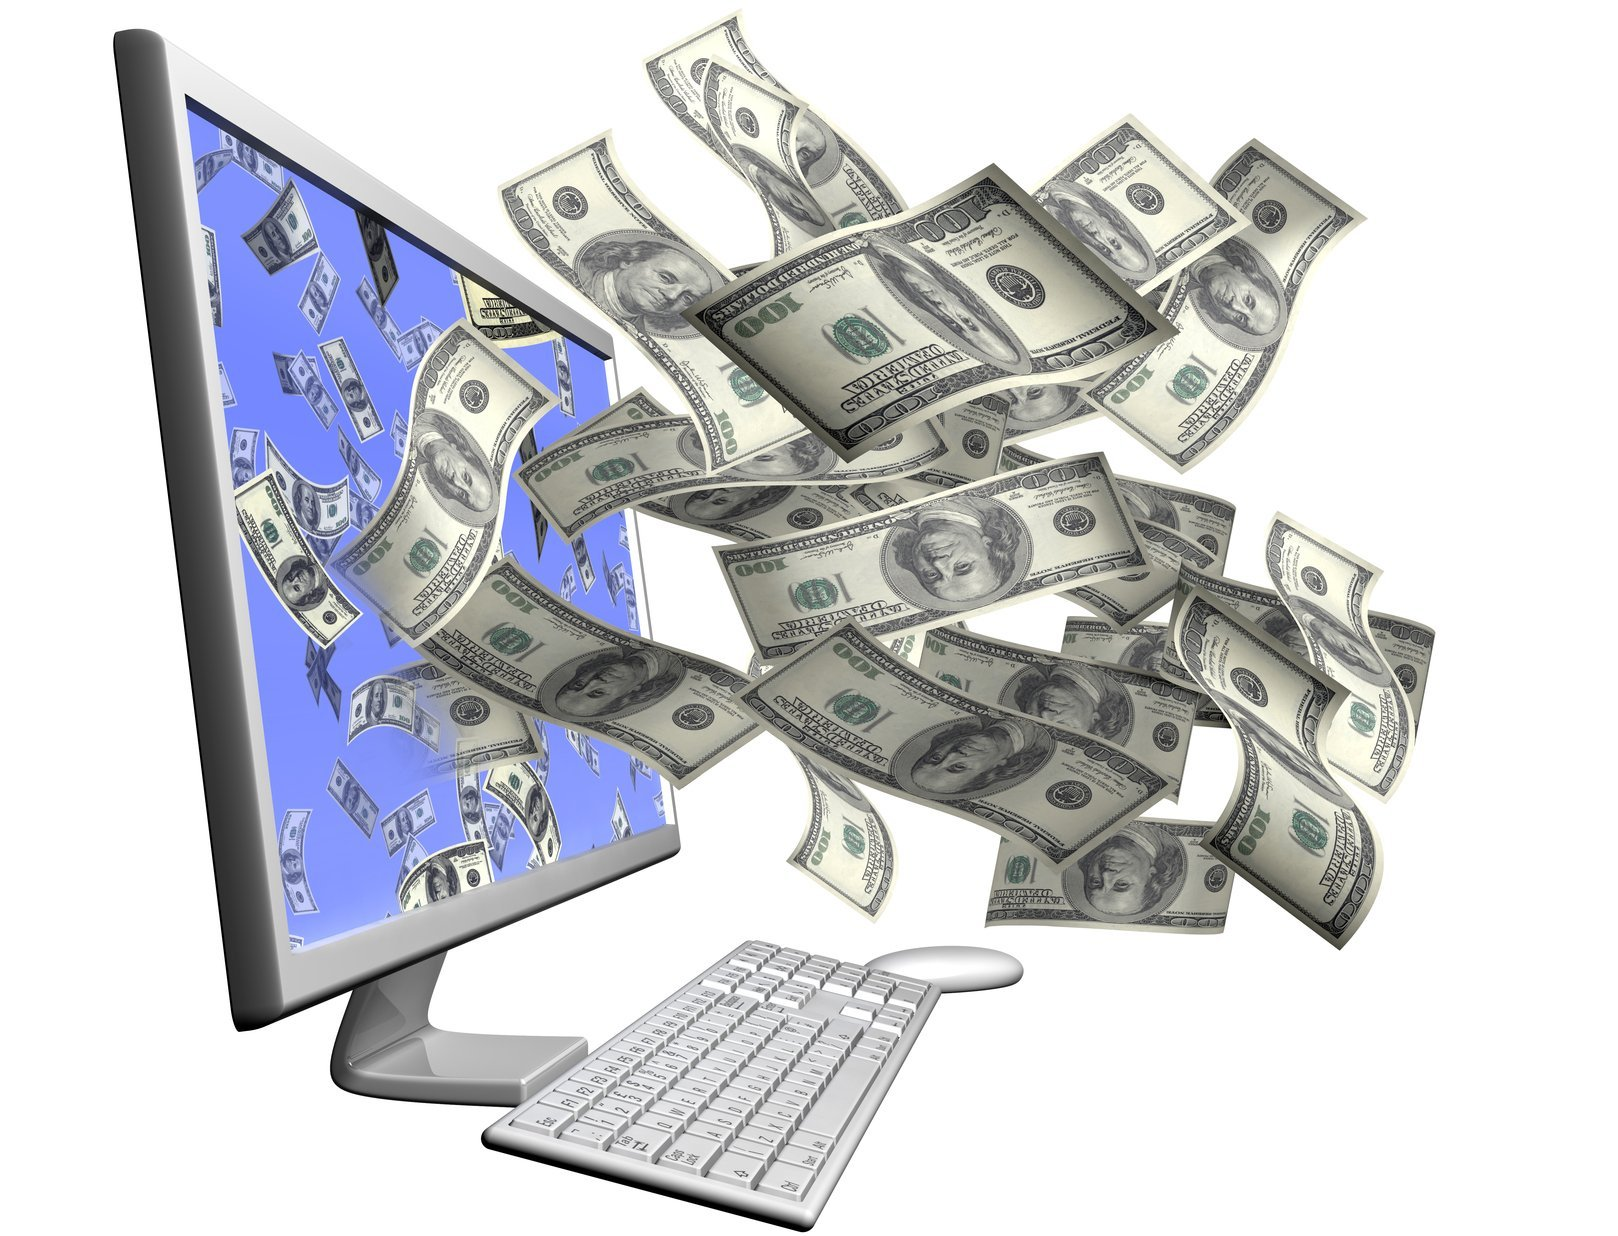 Making money with your computer